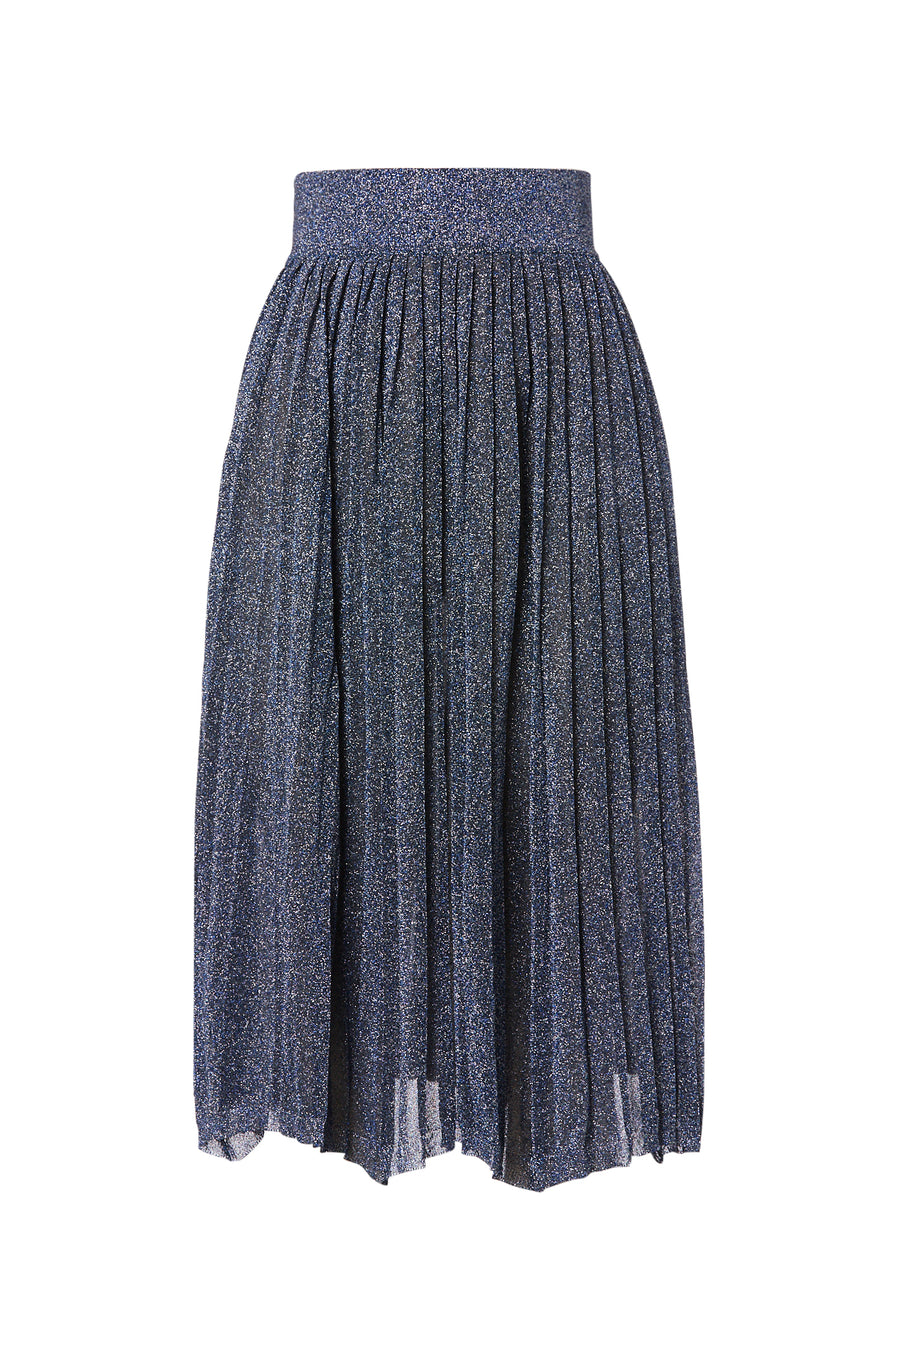 TINSEL PLEAT SKIRT 16, MIDNIGHT color